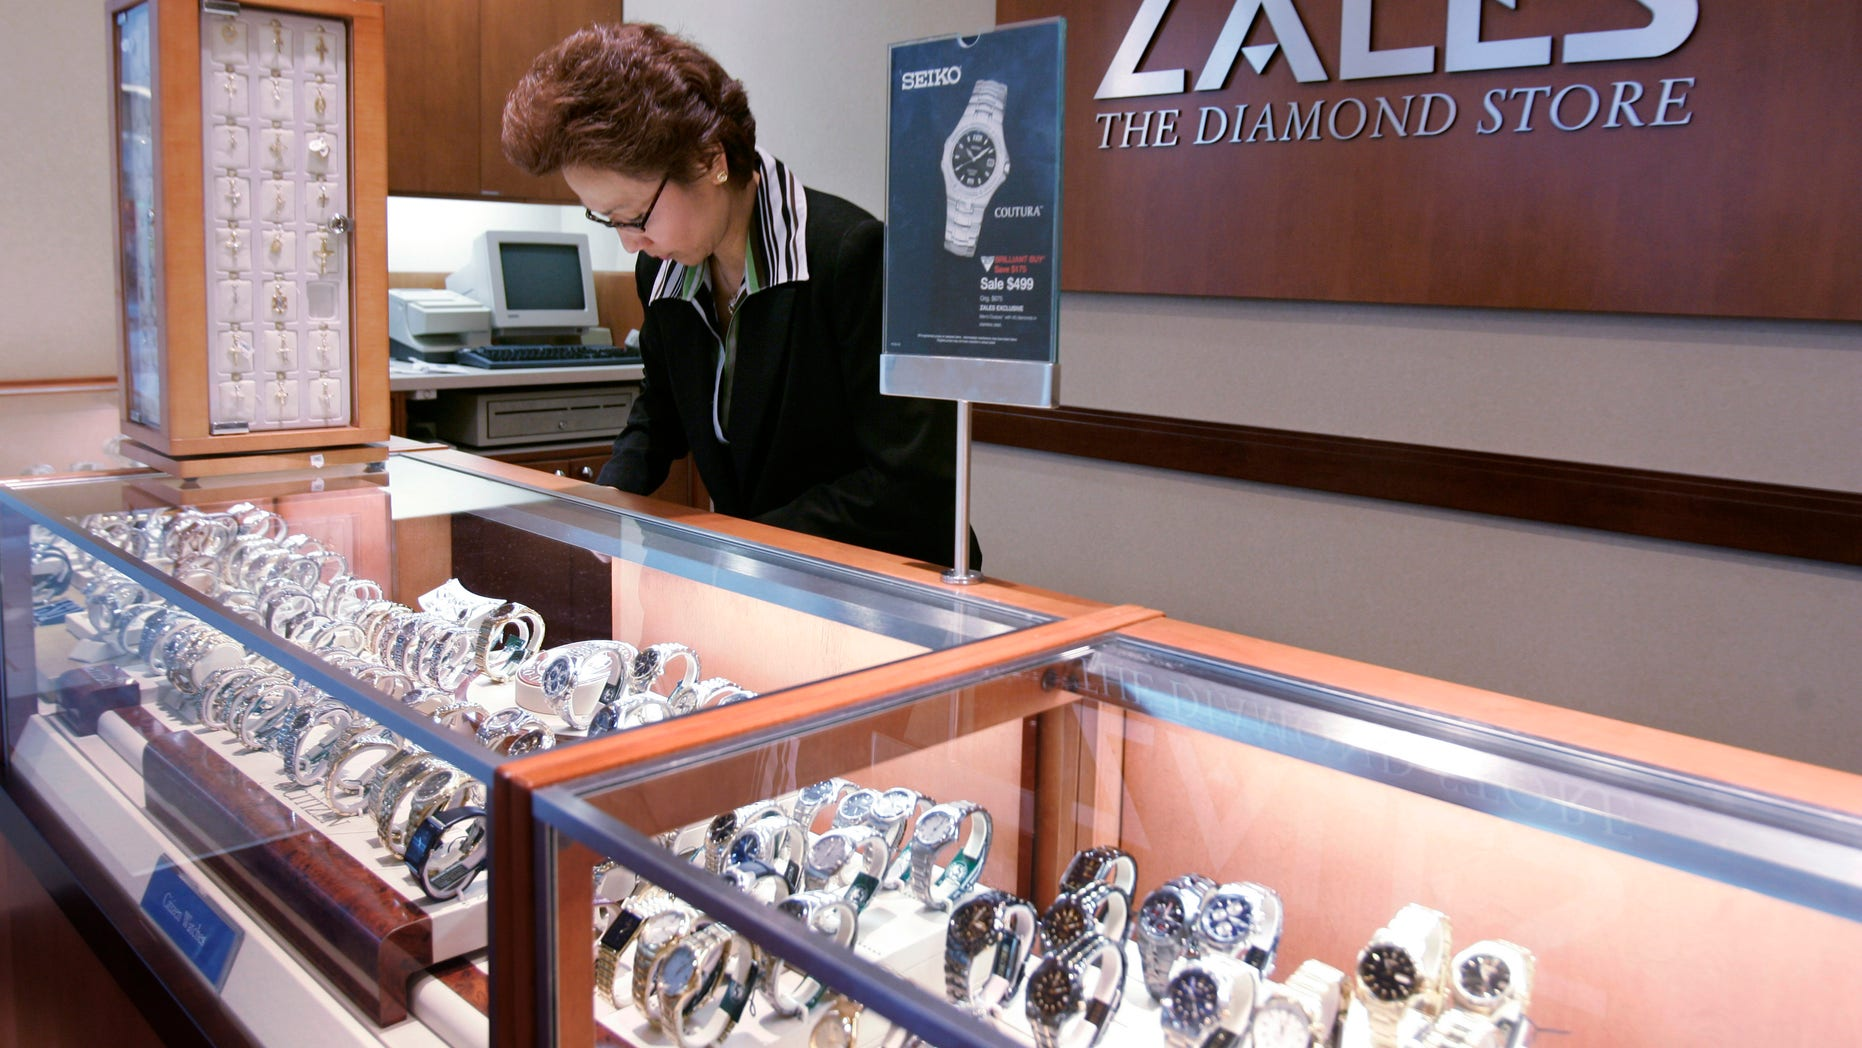 FILE - In this Jan. 4, 2007, a Zales jewelry store worker looks at watches in San Bruno, Calif.  Signet Jewelers is buying Zale Corp. for approximately $690 million to help diversify its business and expand further internationally. Shares of Zale soared more than 39 percent in Wednesday, Feb. 19, 2014,  premarket trading, while Signet Jewelers Ltd.' stock rose more than 9 percent.  (AP Photo/Paul Sakuma, file)